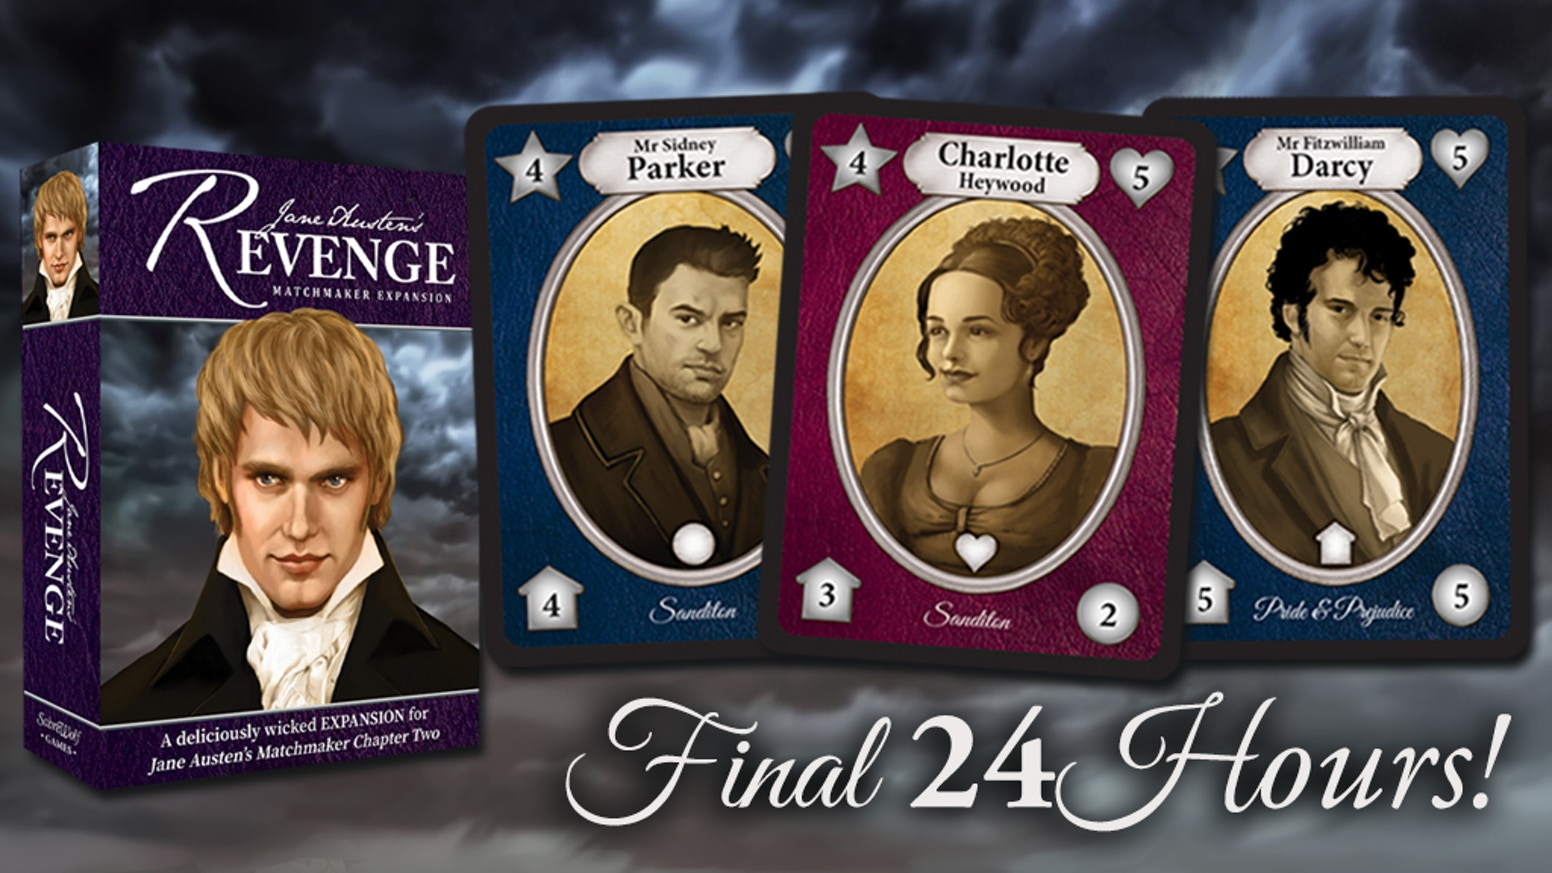 A deliciously wicked expansion for Jane Austen's Matchmaker: Chapter Two.